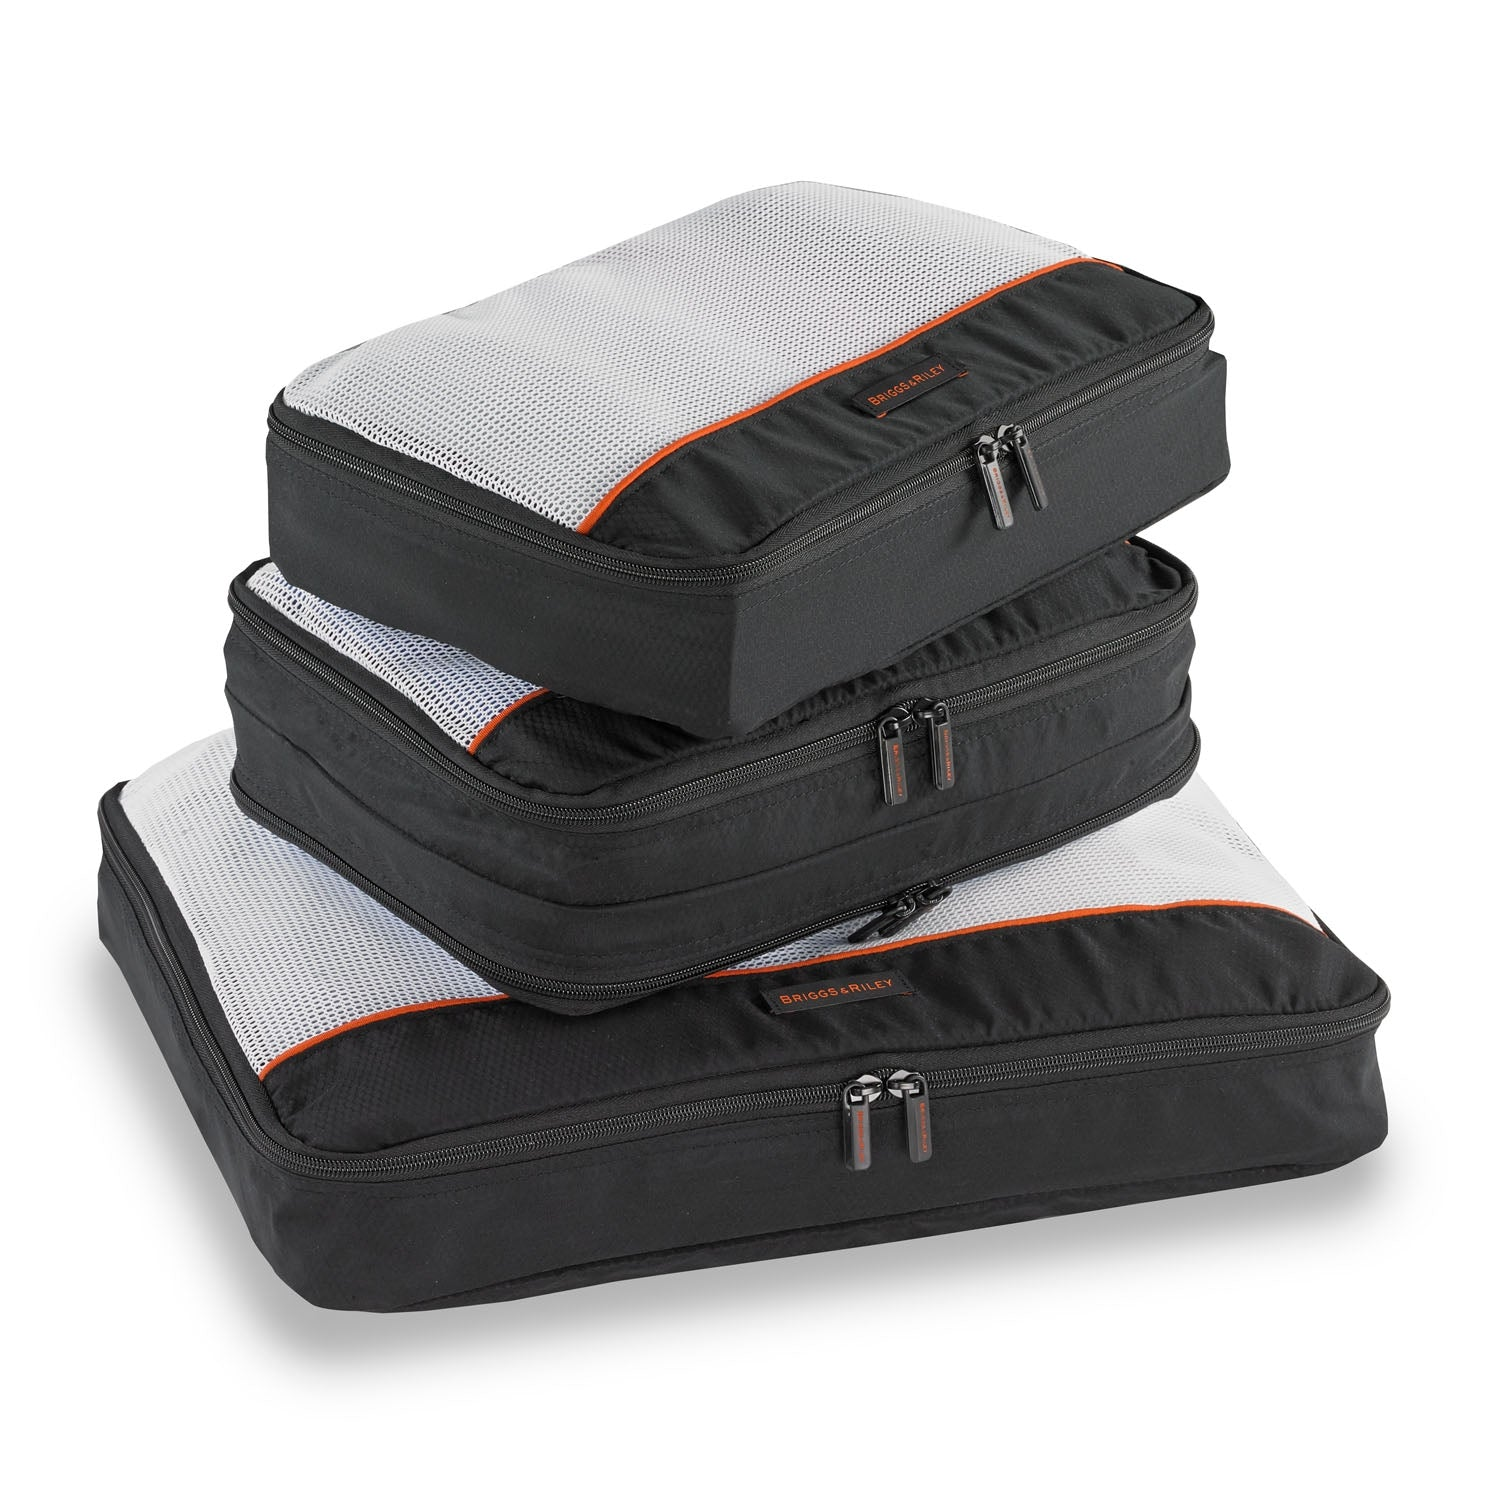 Large Travel Packing Cubes (3-Piece Set)